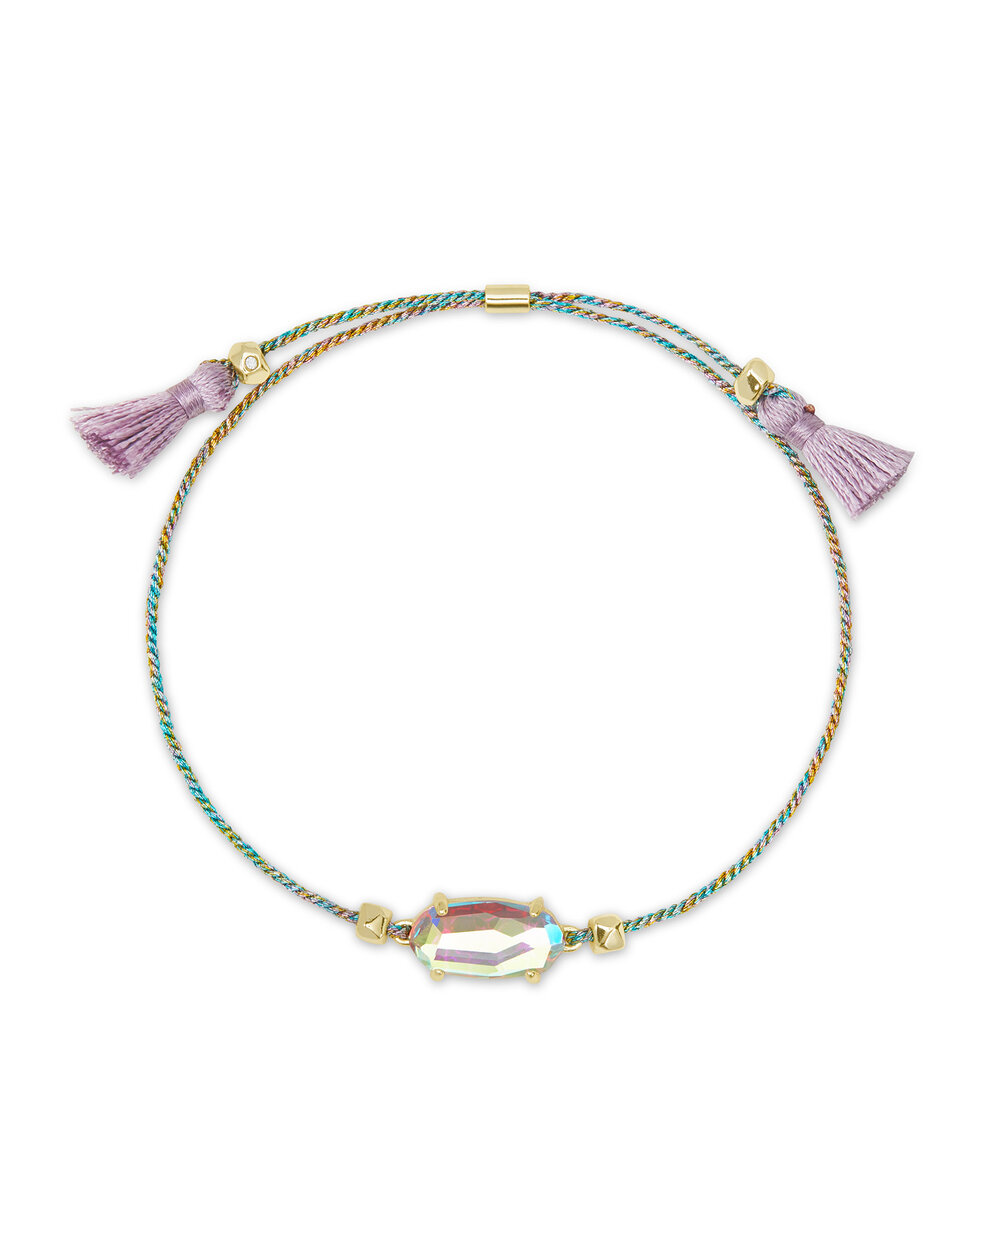 kendra-scott-everlyne-friendship-bracelet-gold-dichroic-glass-00-lg.jpg